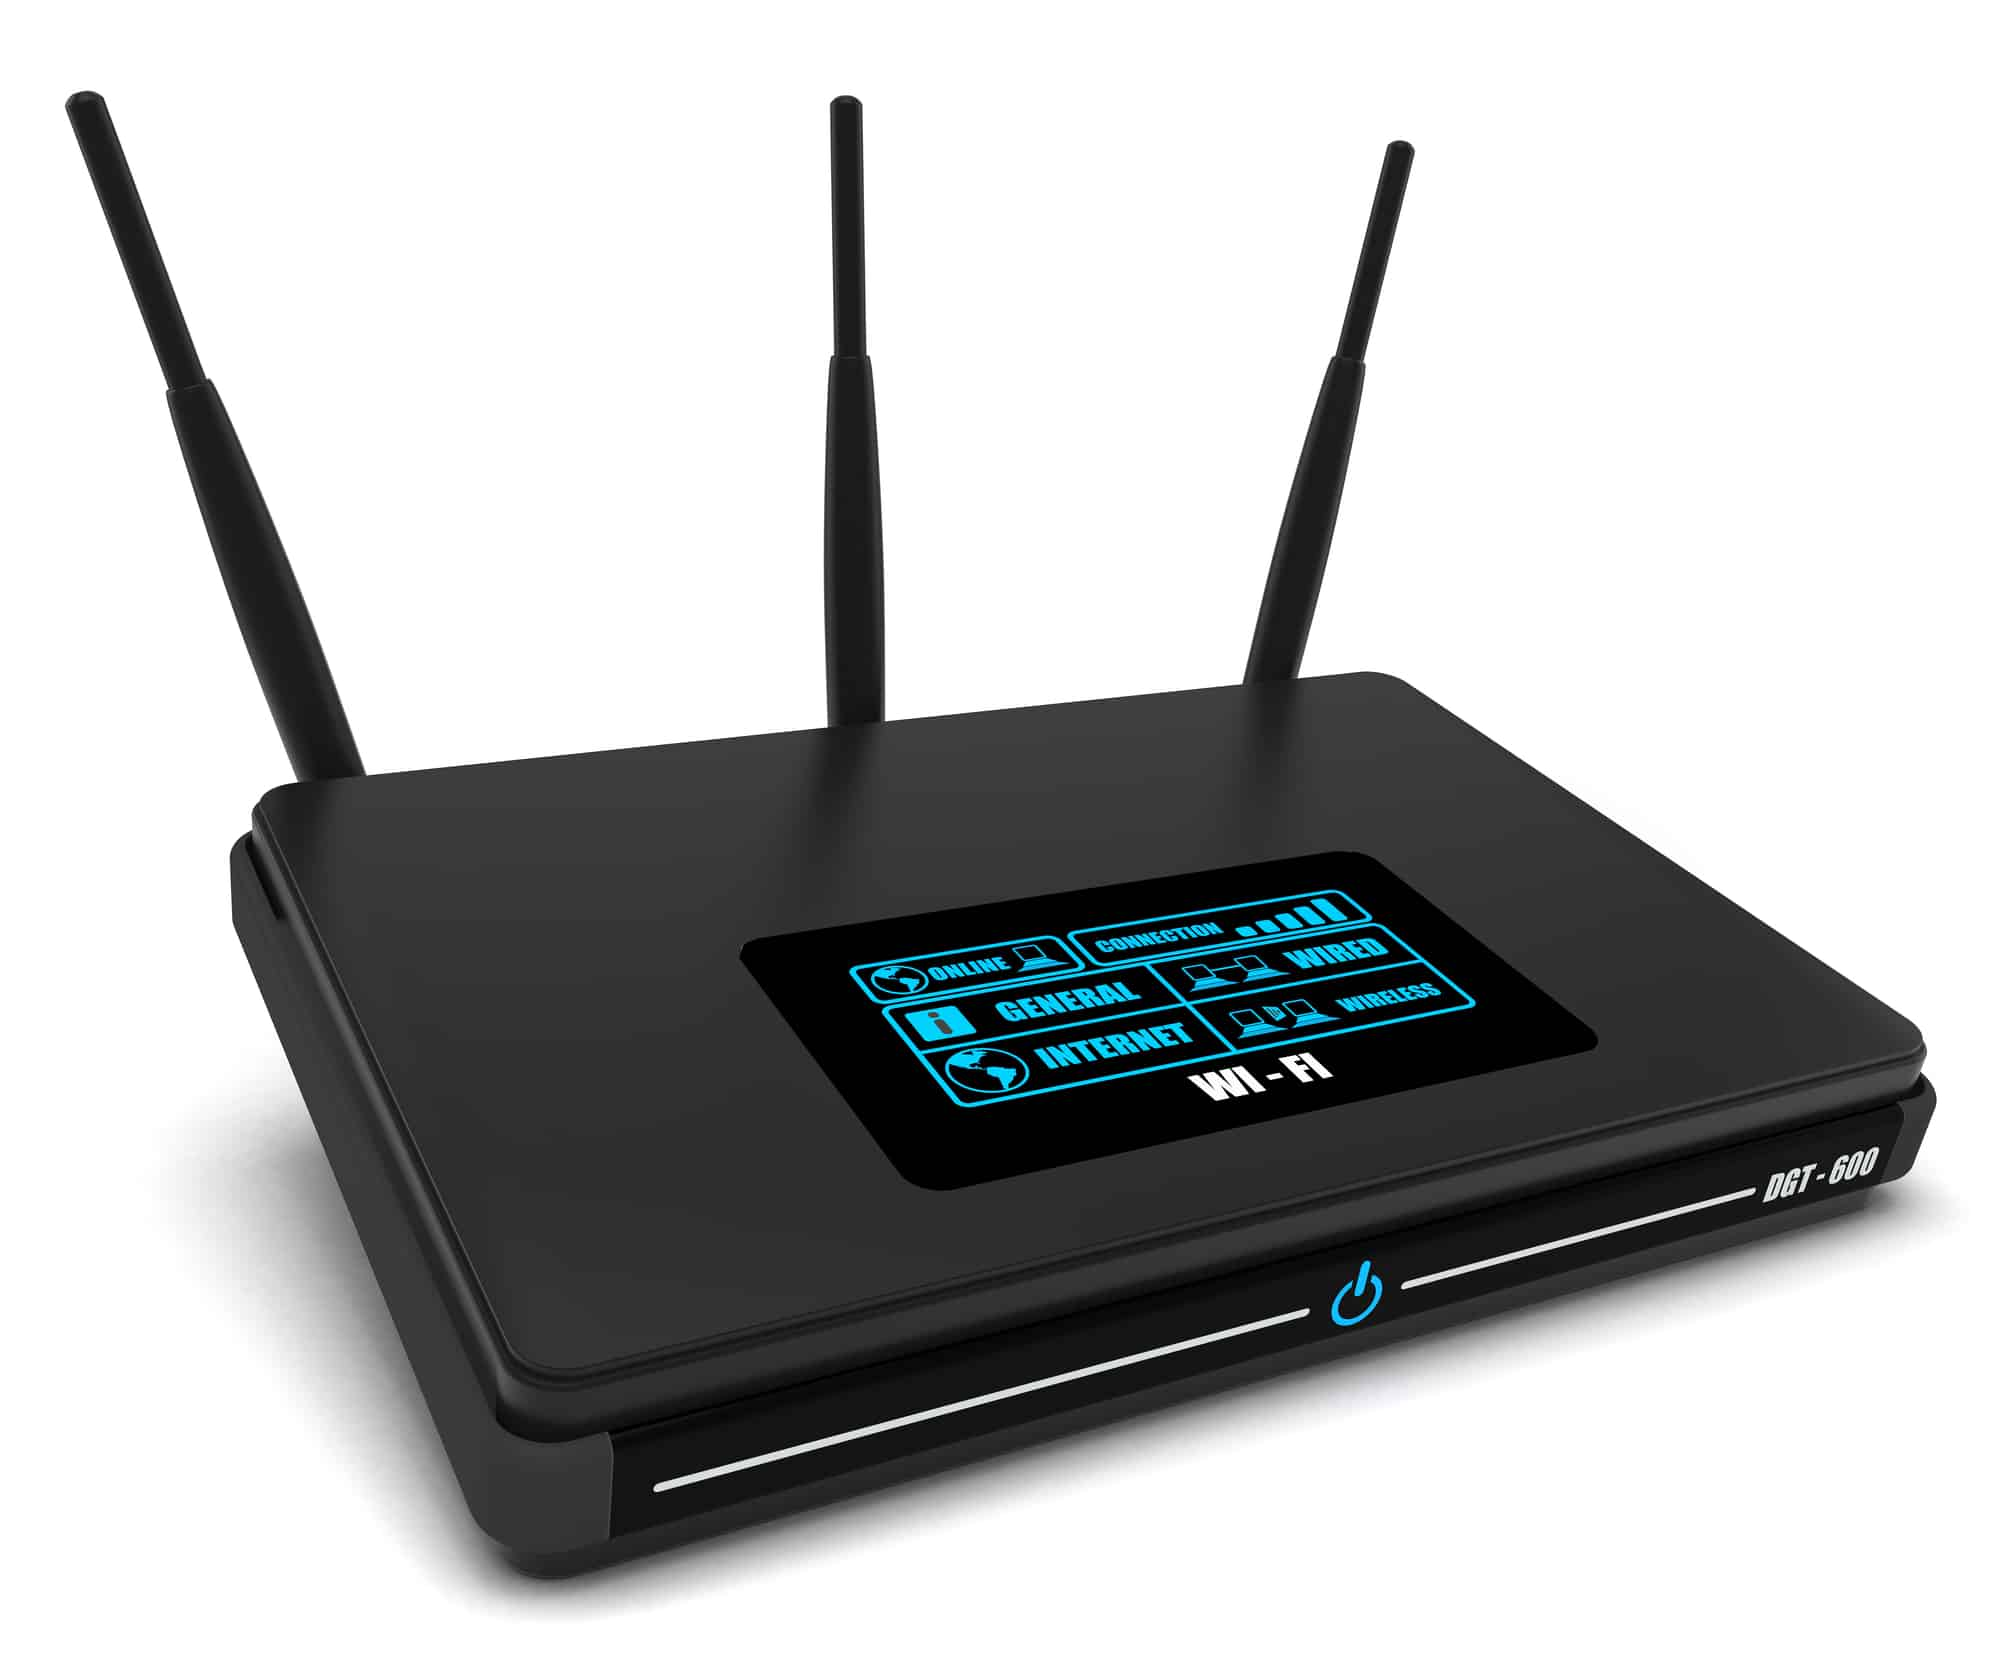 which vpn firmware is the best for the r9000